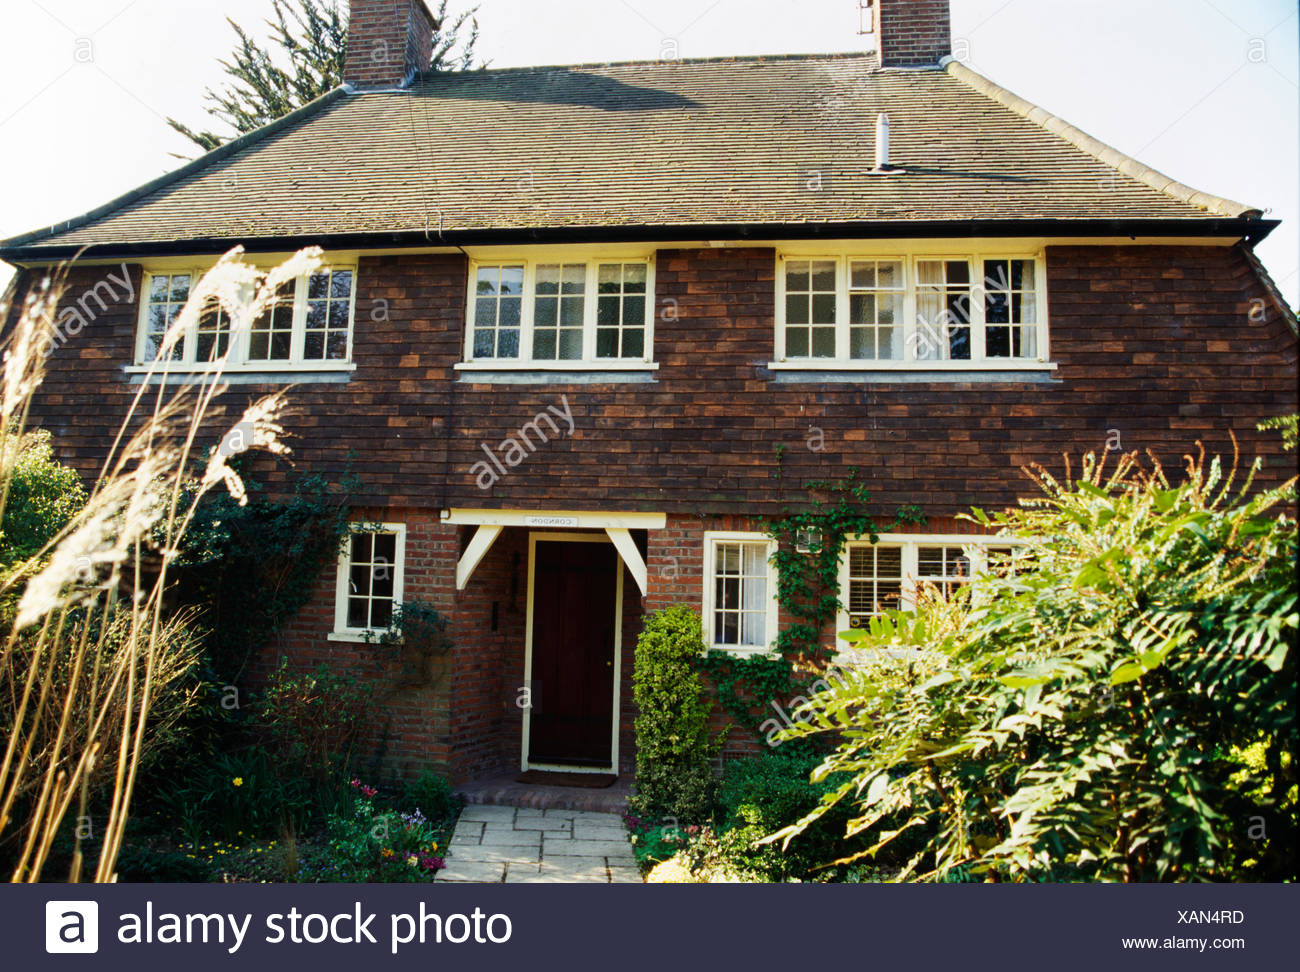 Traditional brick-built Thirties house in the country - Stock Image